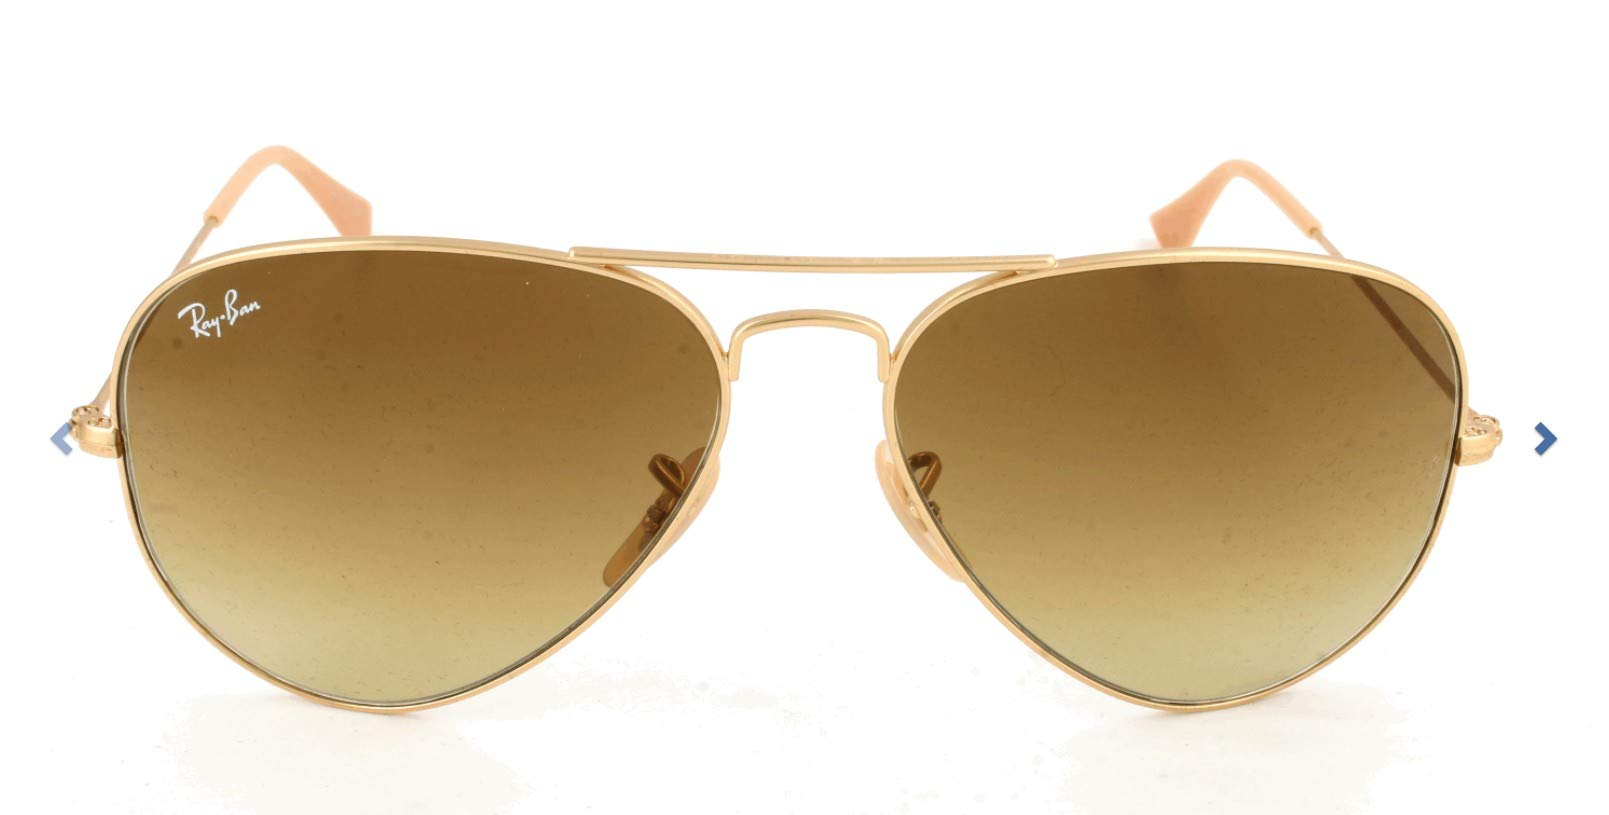 112 8558 Large Ray IconsOrmatte Aviator Goldmarron ban Metal 5LRq3A4j